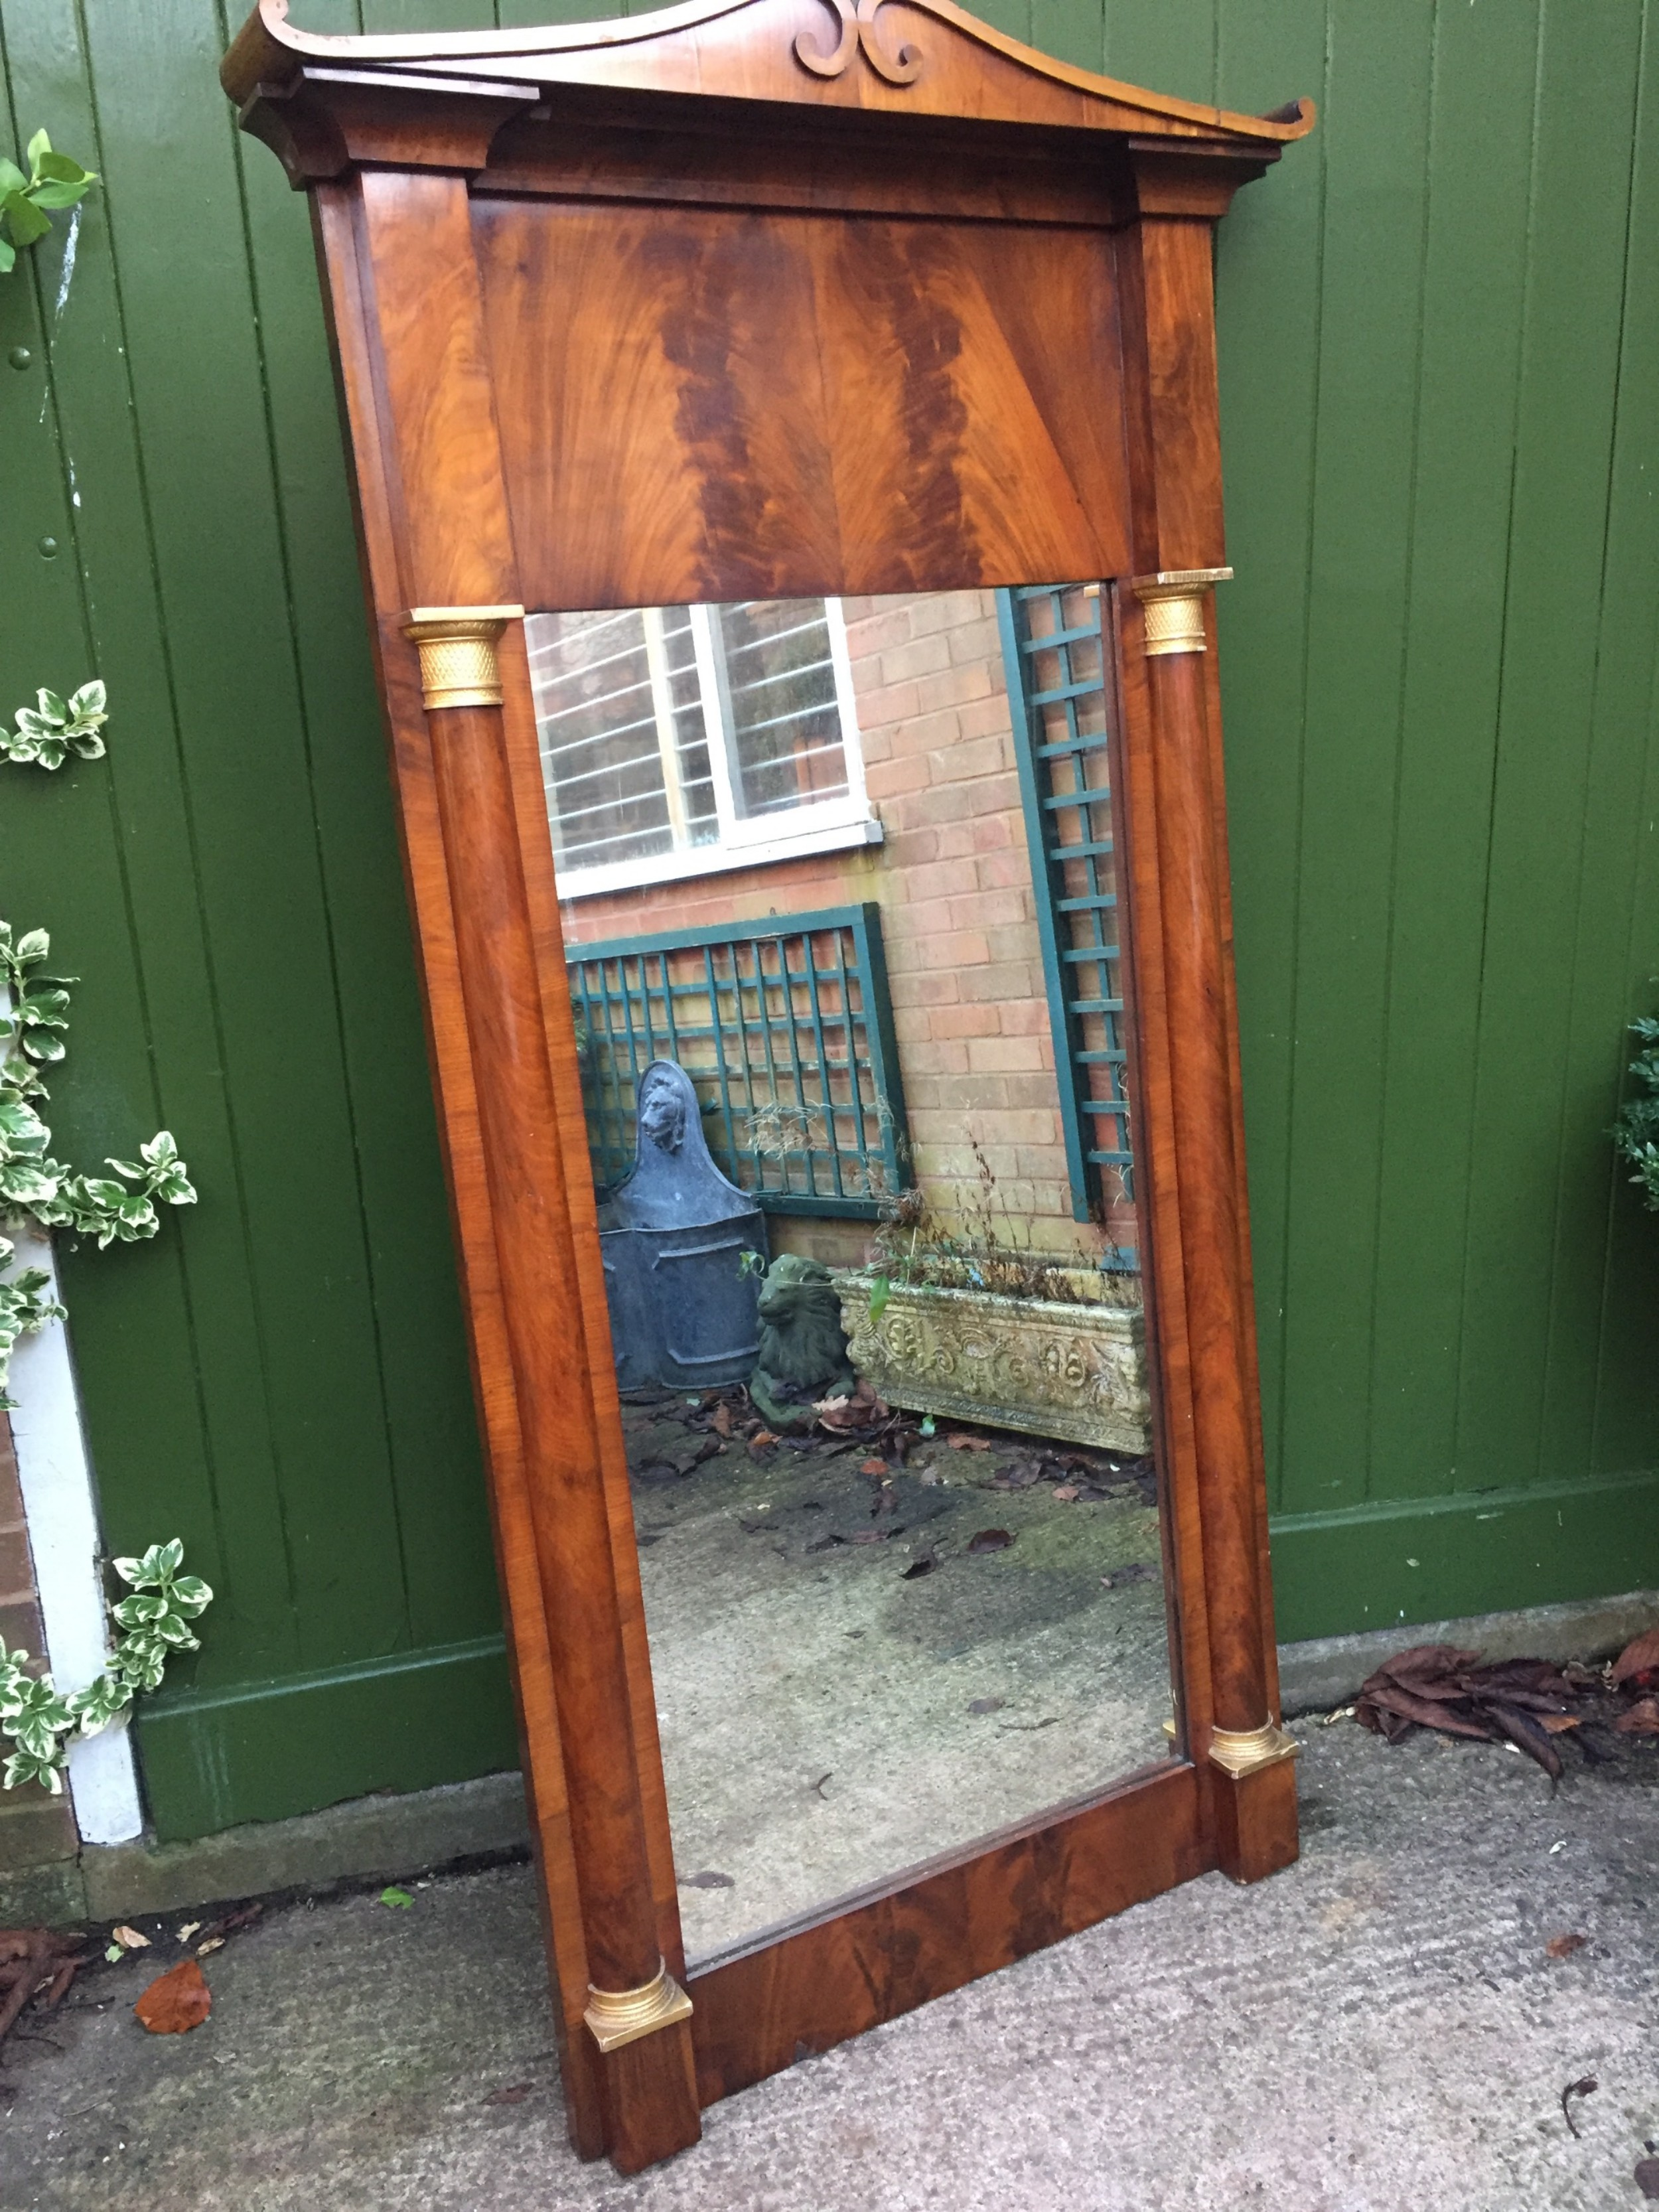 early c19th baltic region mahogany framed pier mirror with parcelgilt column caps and bases